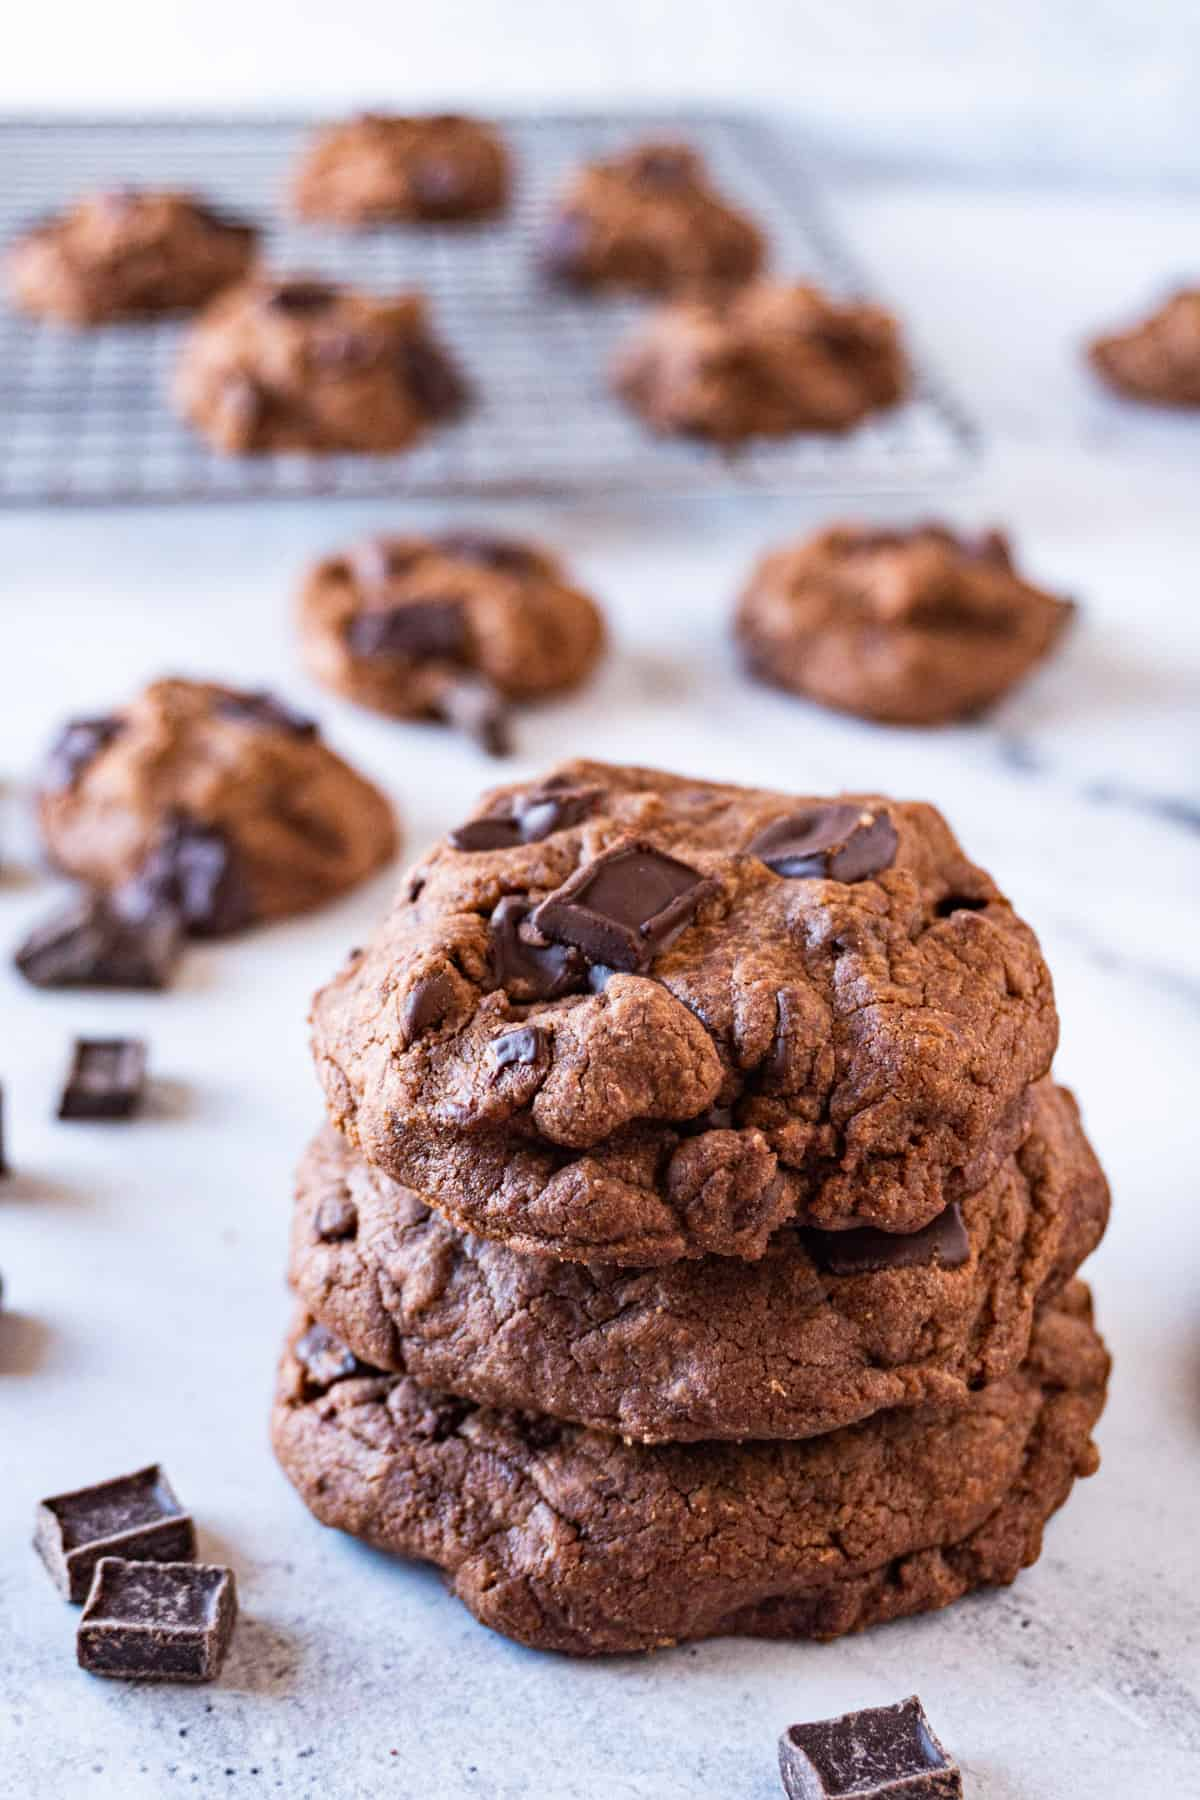 Chewy Chocolate Cookies stacked on one another